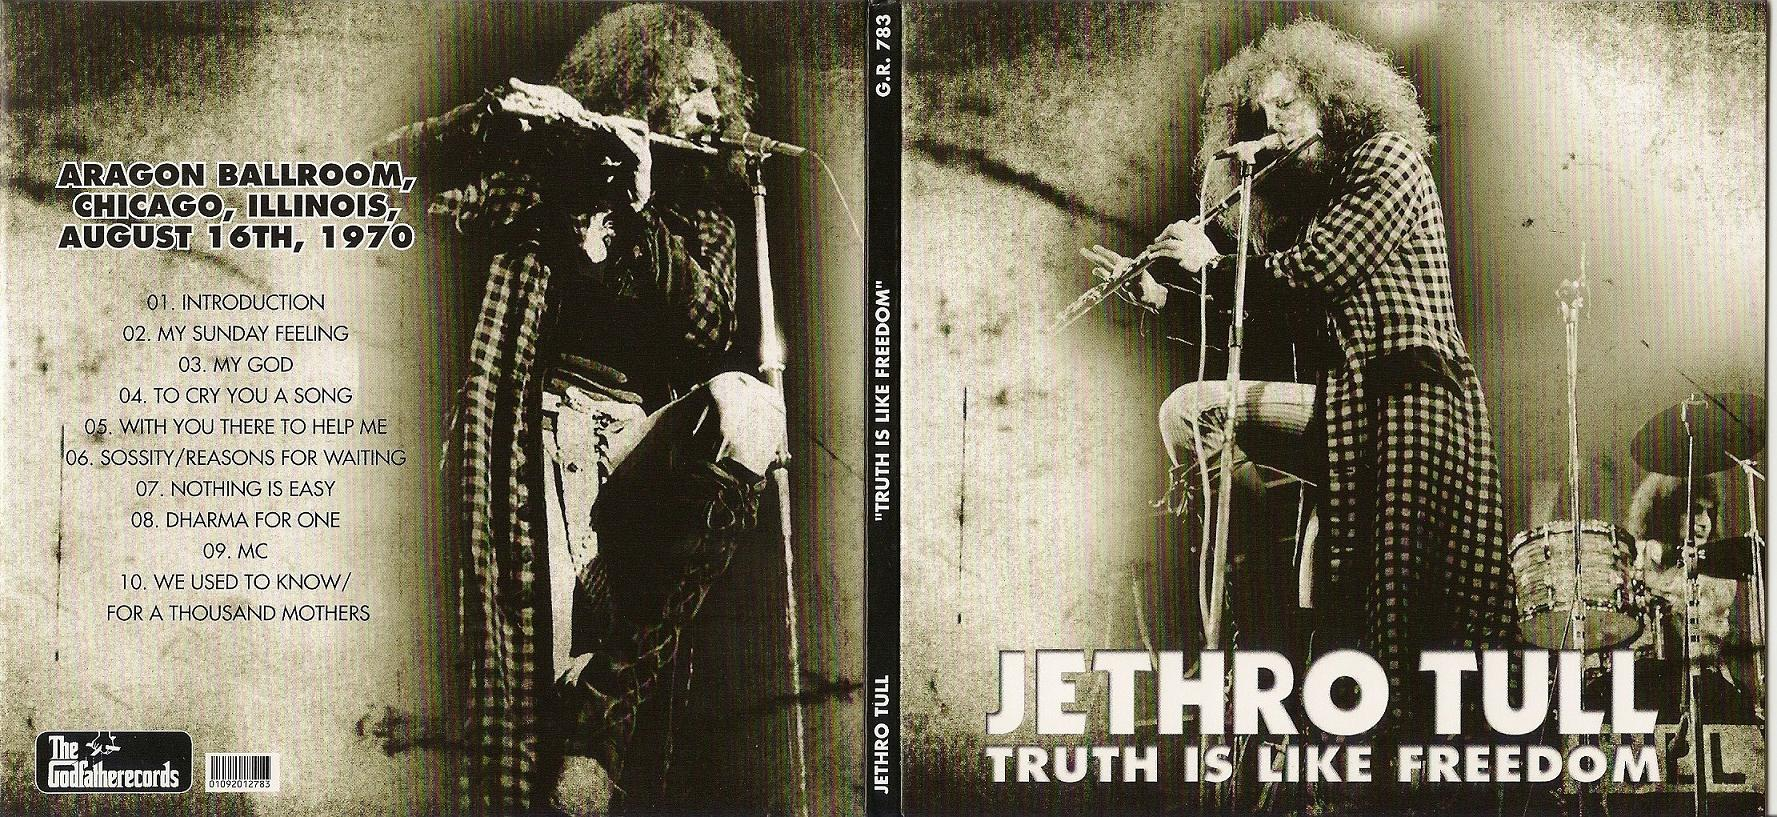 1970-08-16-TRUTH_IS_LIKE_FREEDOM-digipack